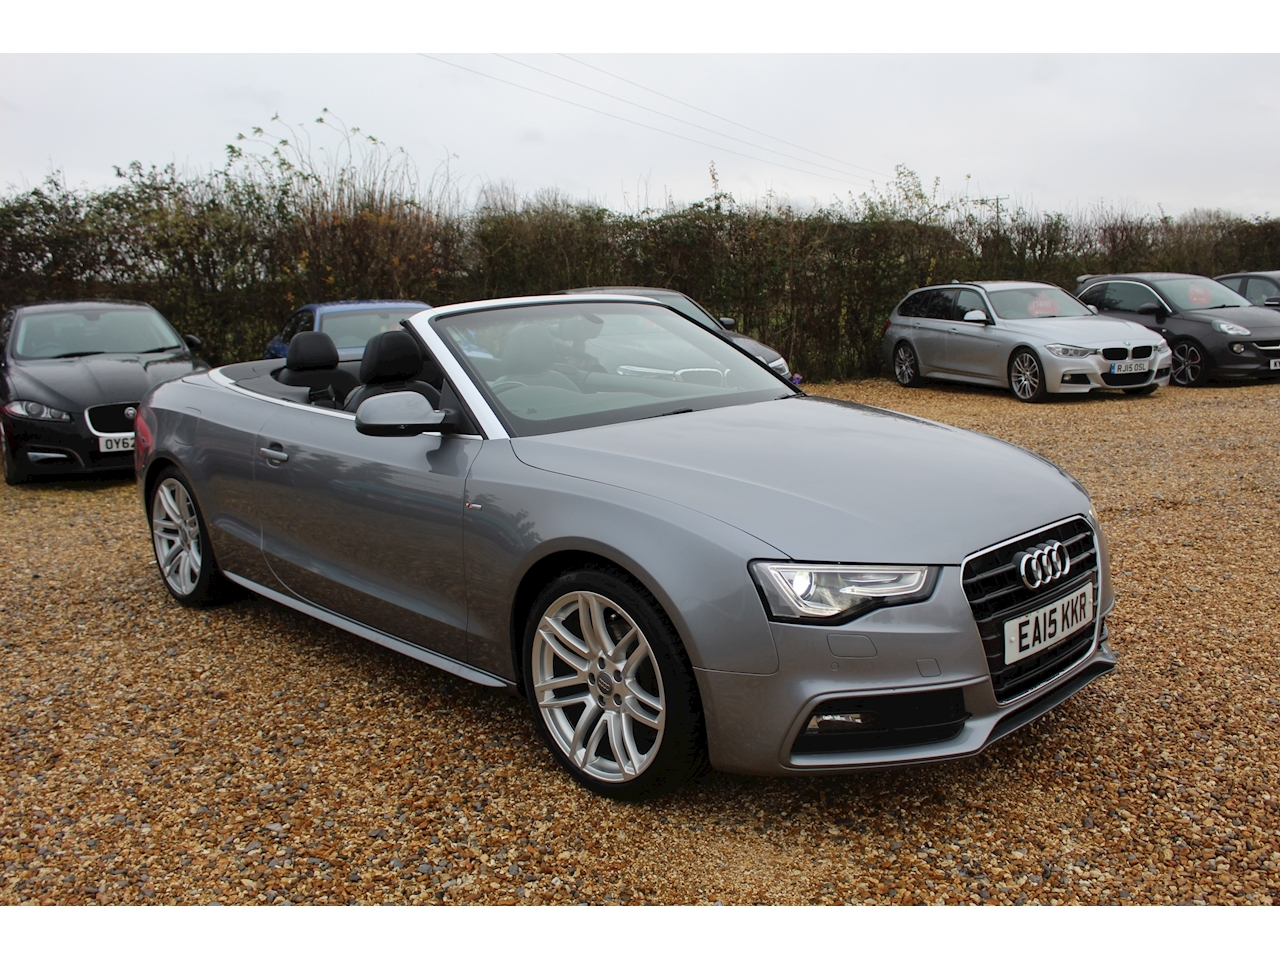 Audi A5 Cabriolet S line Special Edition Cabriolet 1.8 Multitronic Petrol